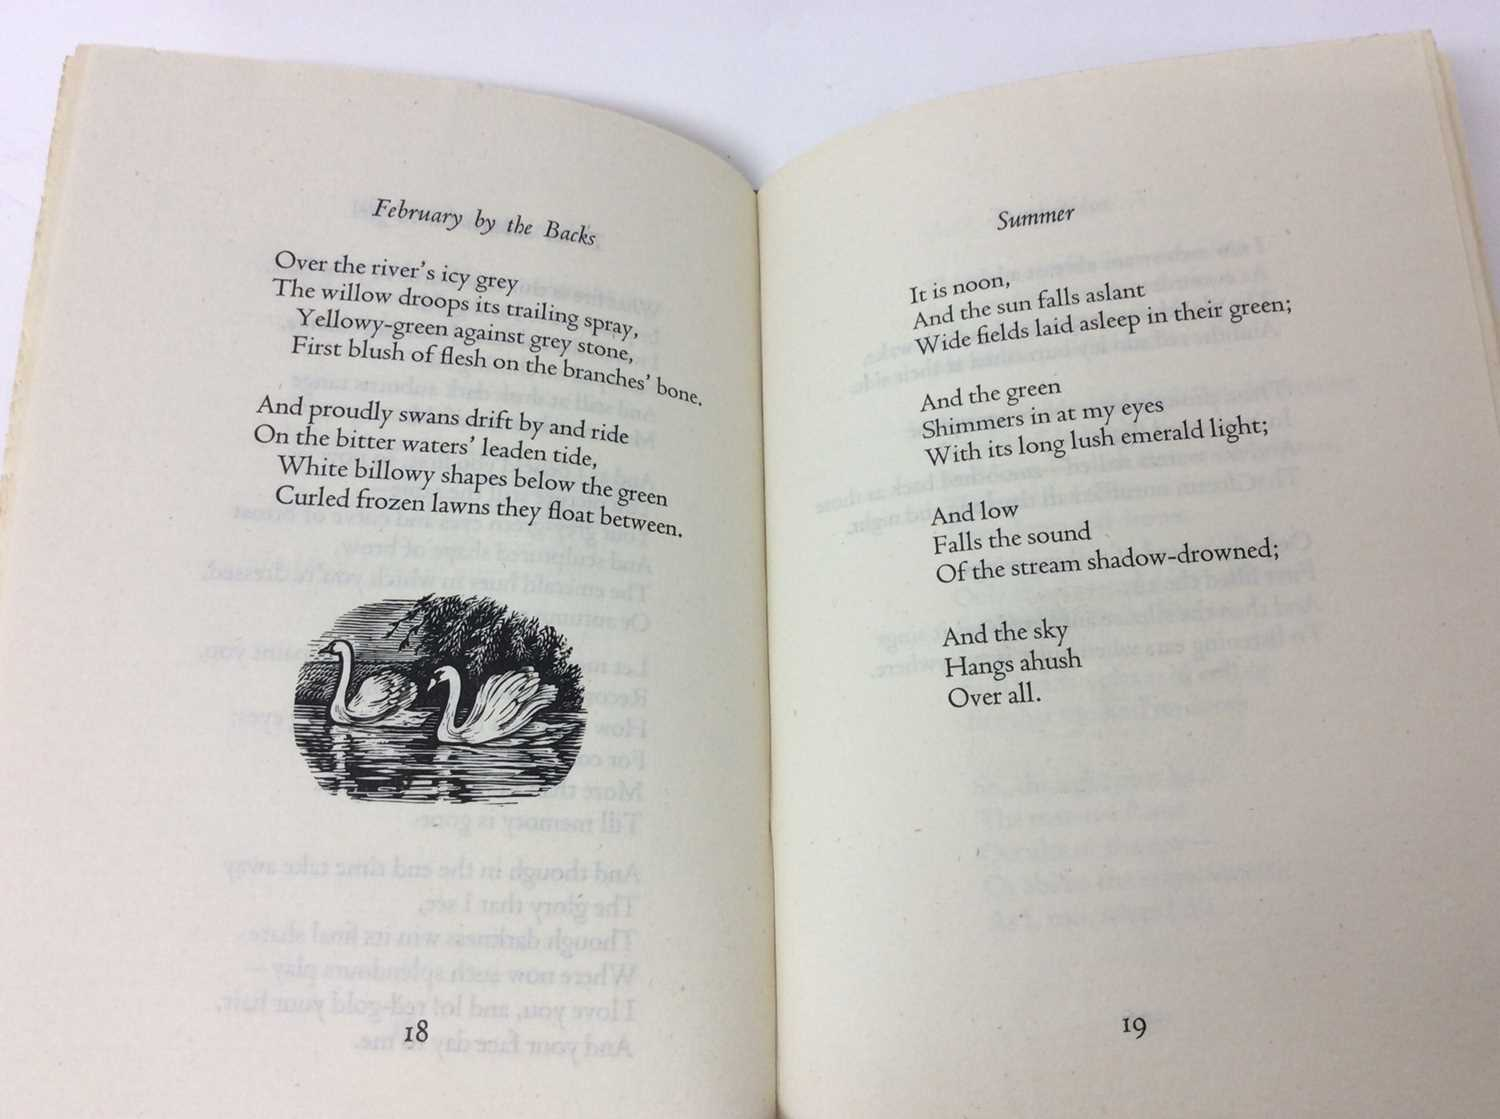 Evelyn Ansell - Twenty Five Poems, also Poems from the Works of Charles Cotton, illustrated by Claud - Image 7 of 13